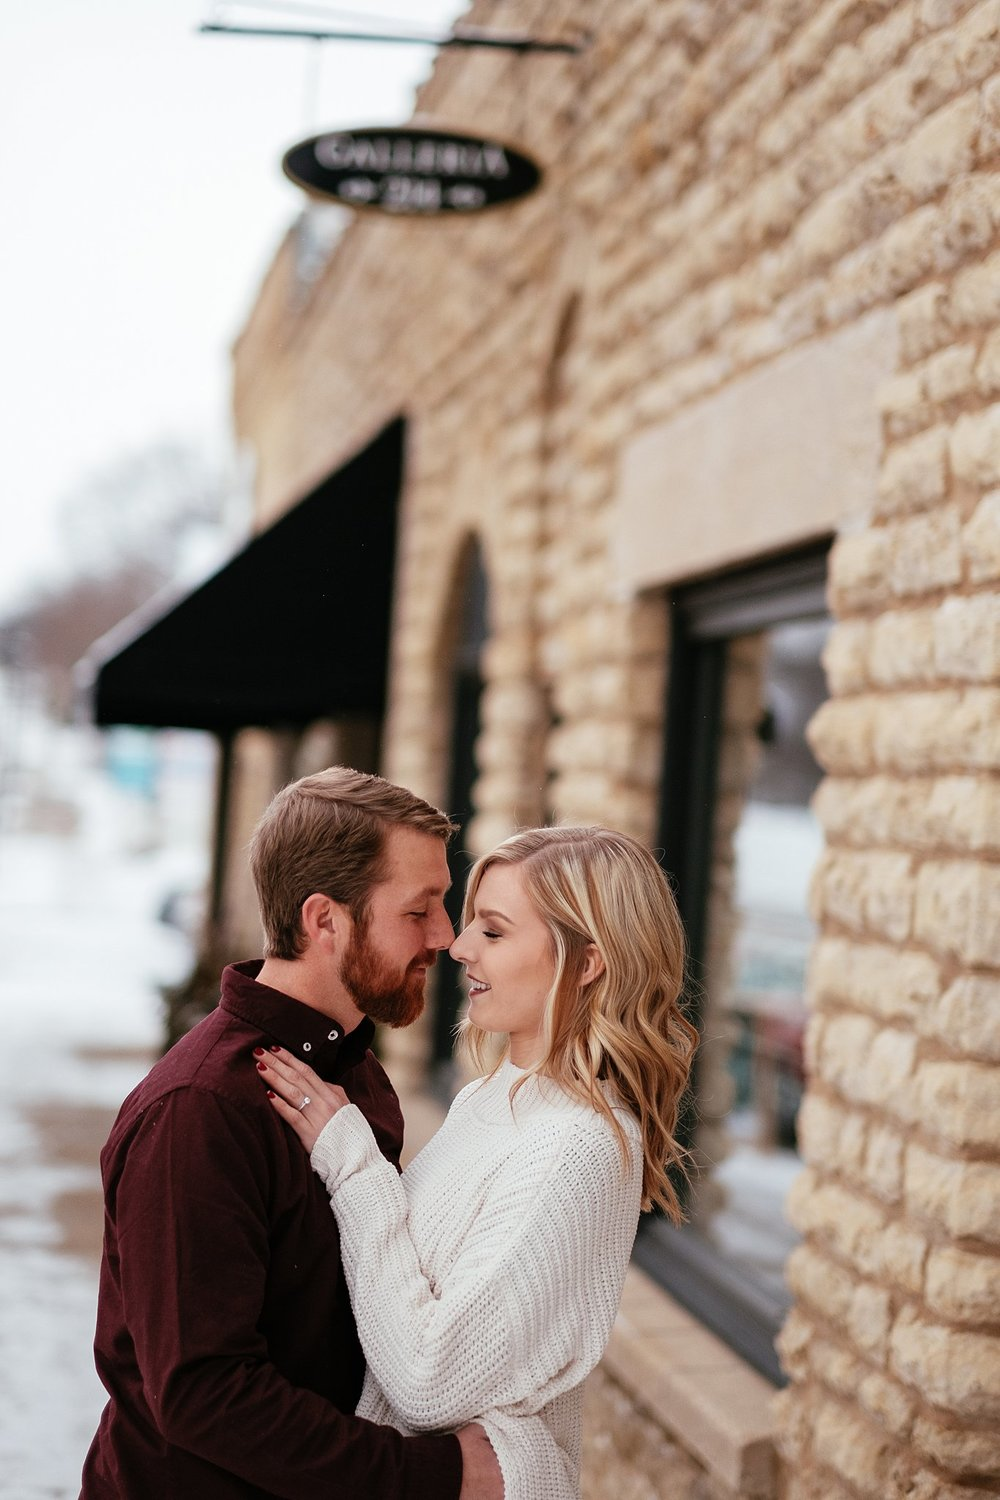 Copper Key Visuals Wisconsin Ice Skating Engagement Session-20.jpg